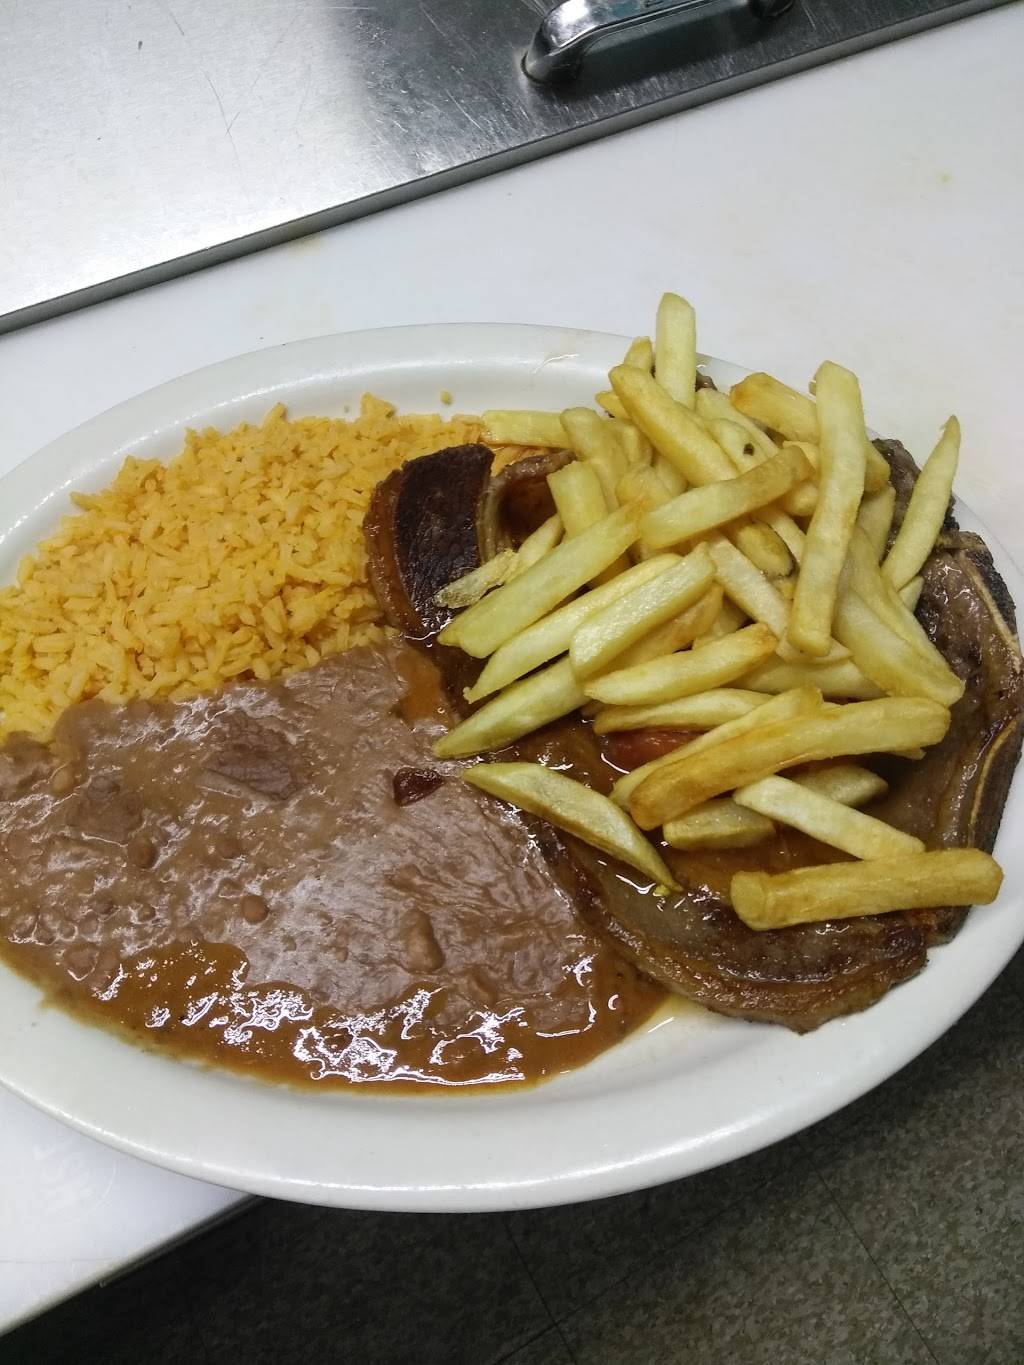 San Juan Mexican Restaurant   restaurant   14462 I-10 Frontage Rd, St Hedwig, TX 78152, USA   2106679260 OR +1 210-667-9260